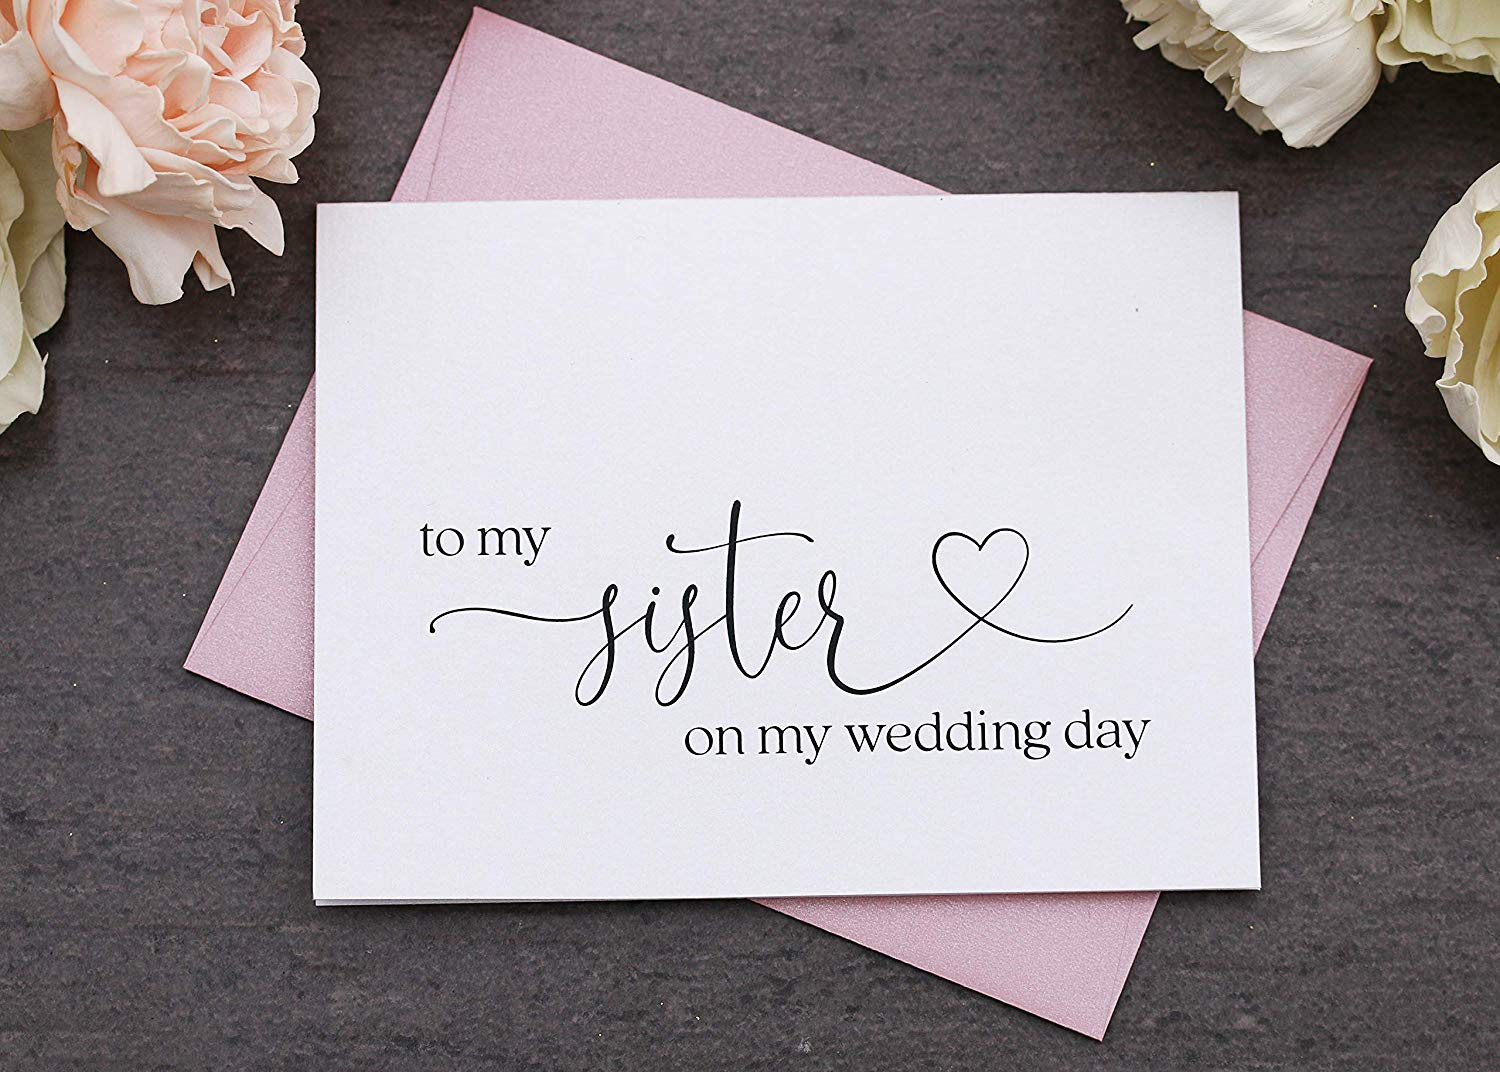 cheap thank you card wedding find thank you card wedding deals on